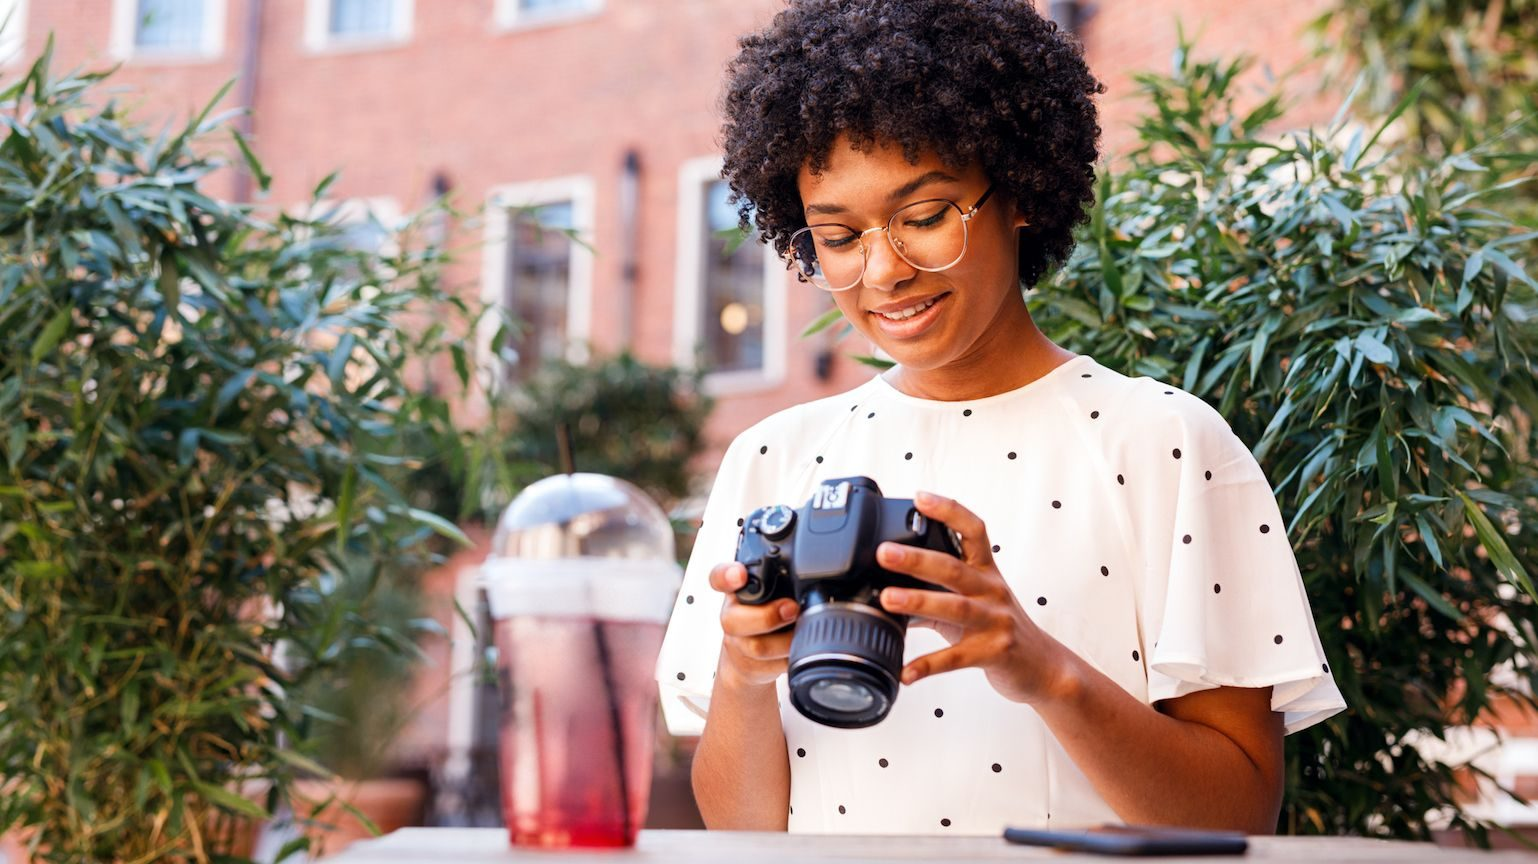 A young woman looking down at her digital camera and drinking a red juice